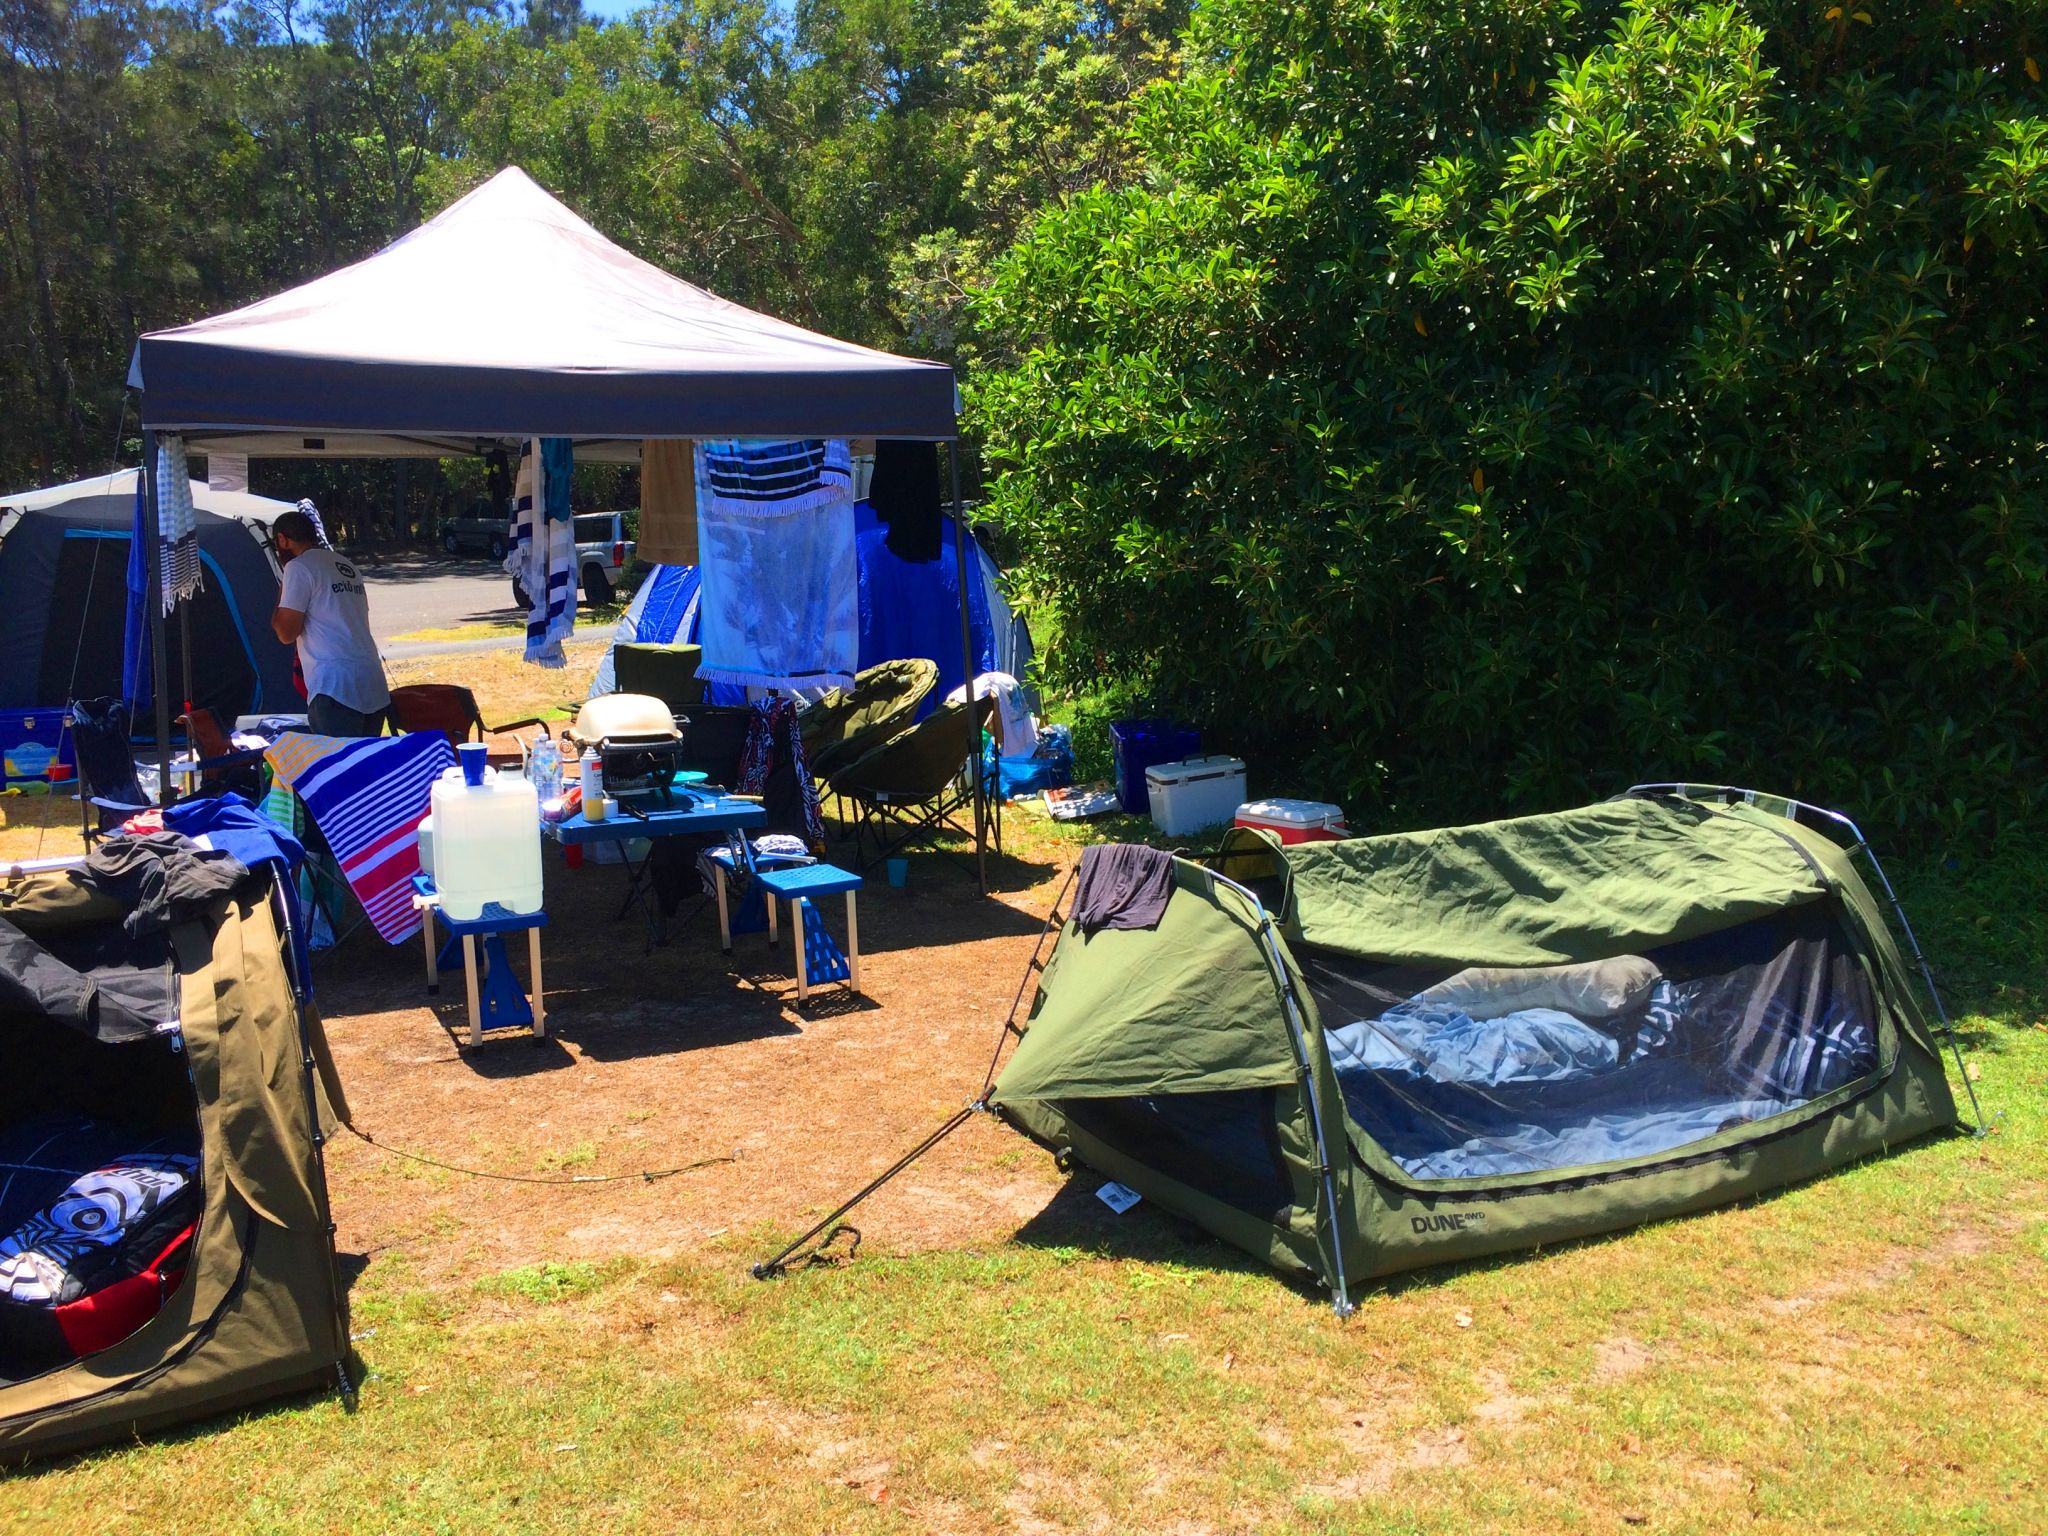 Campsite set up at Trial Bay